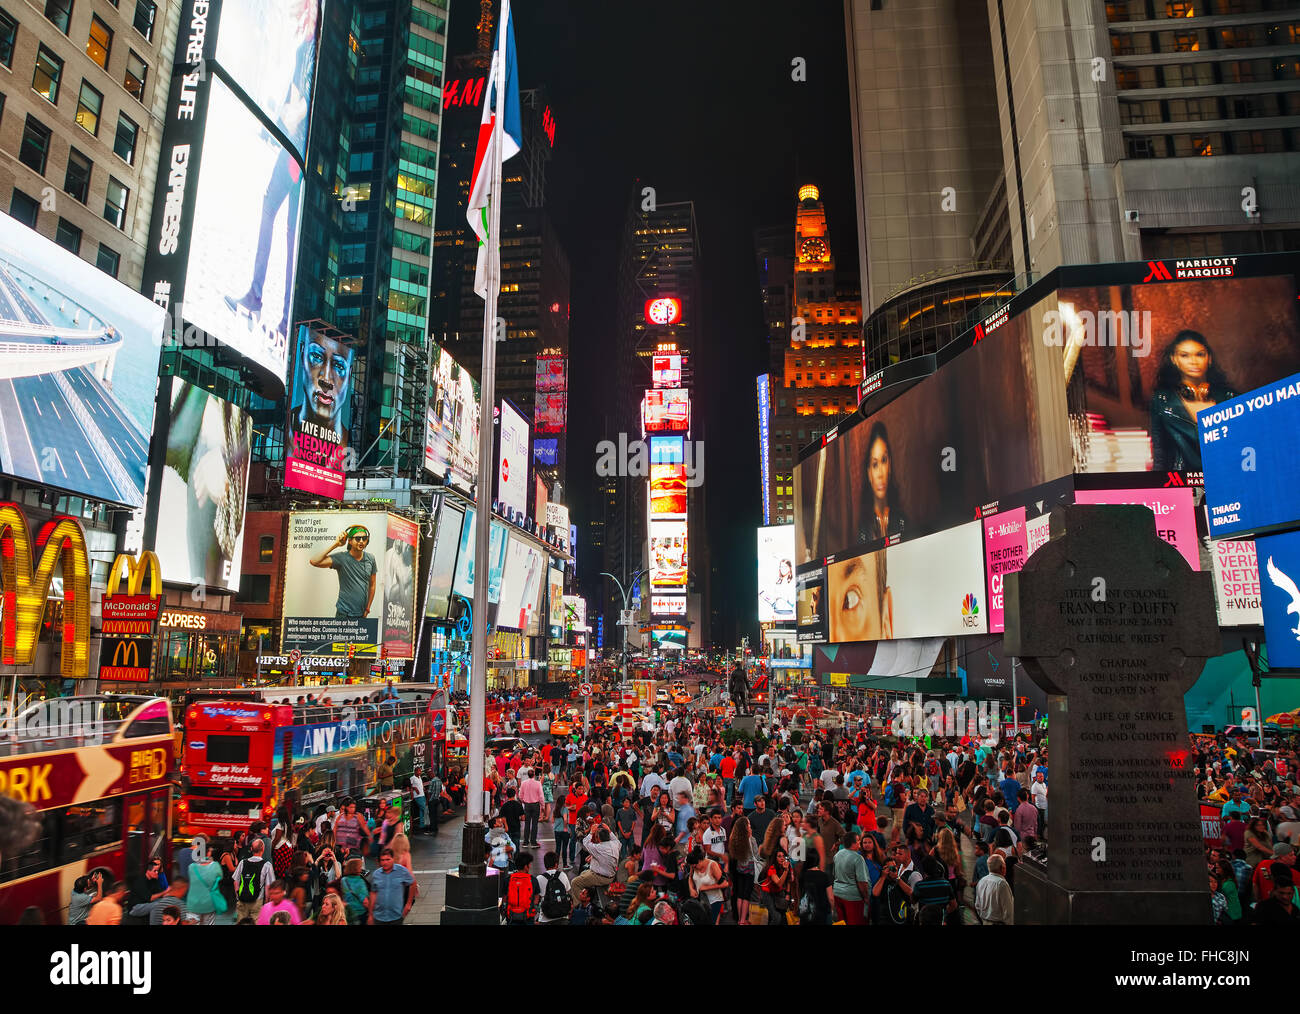 NEW YORK CITY - SEPTEMBER 05: Times square with people in the night on September 5, 2015 in New York City. - Stock Image